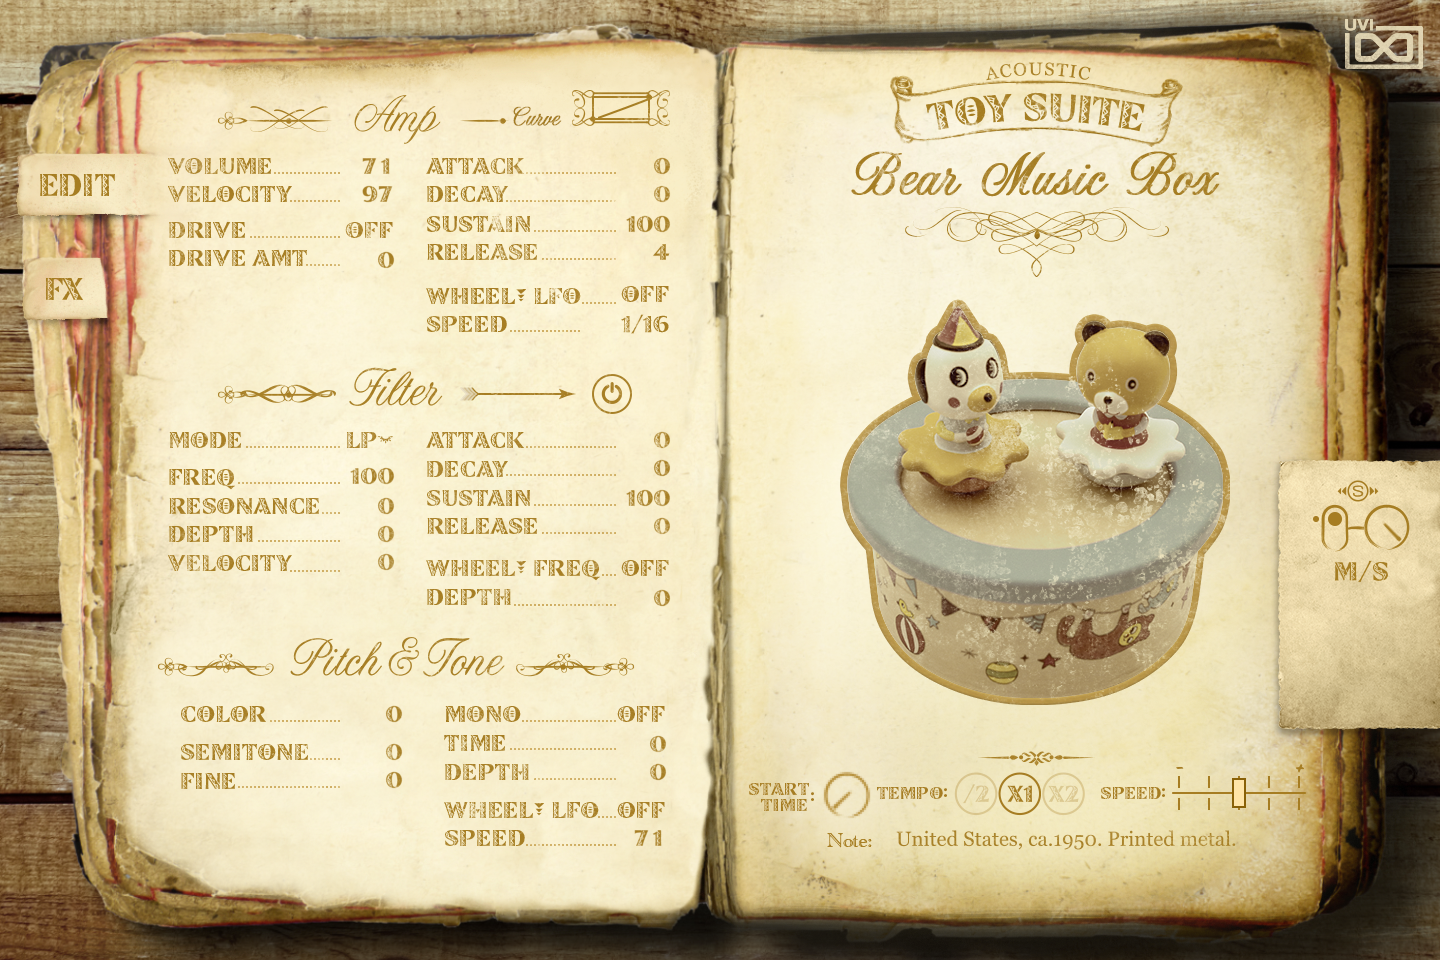 UVI Toy Suite GUI | Bear Music Box